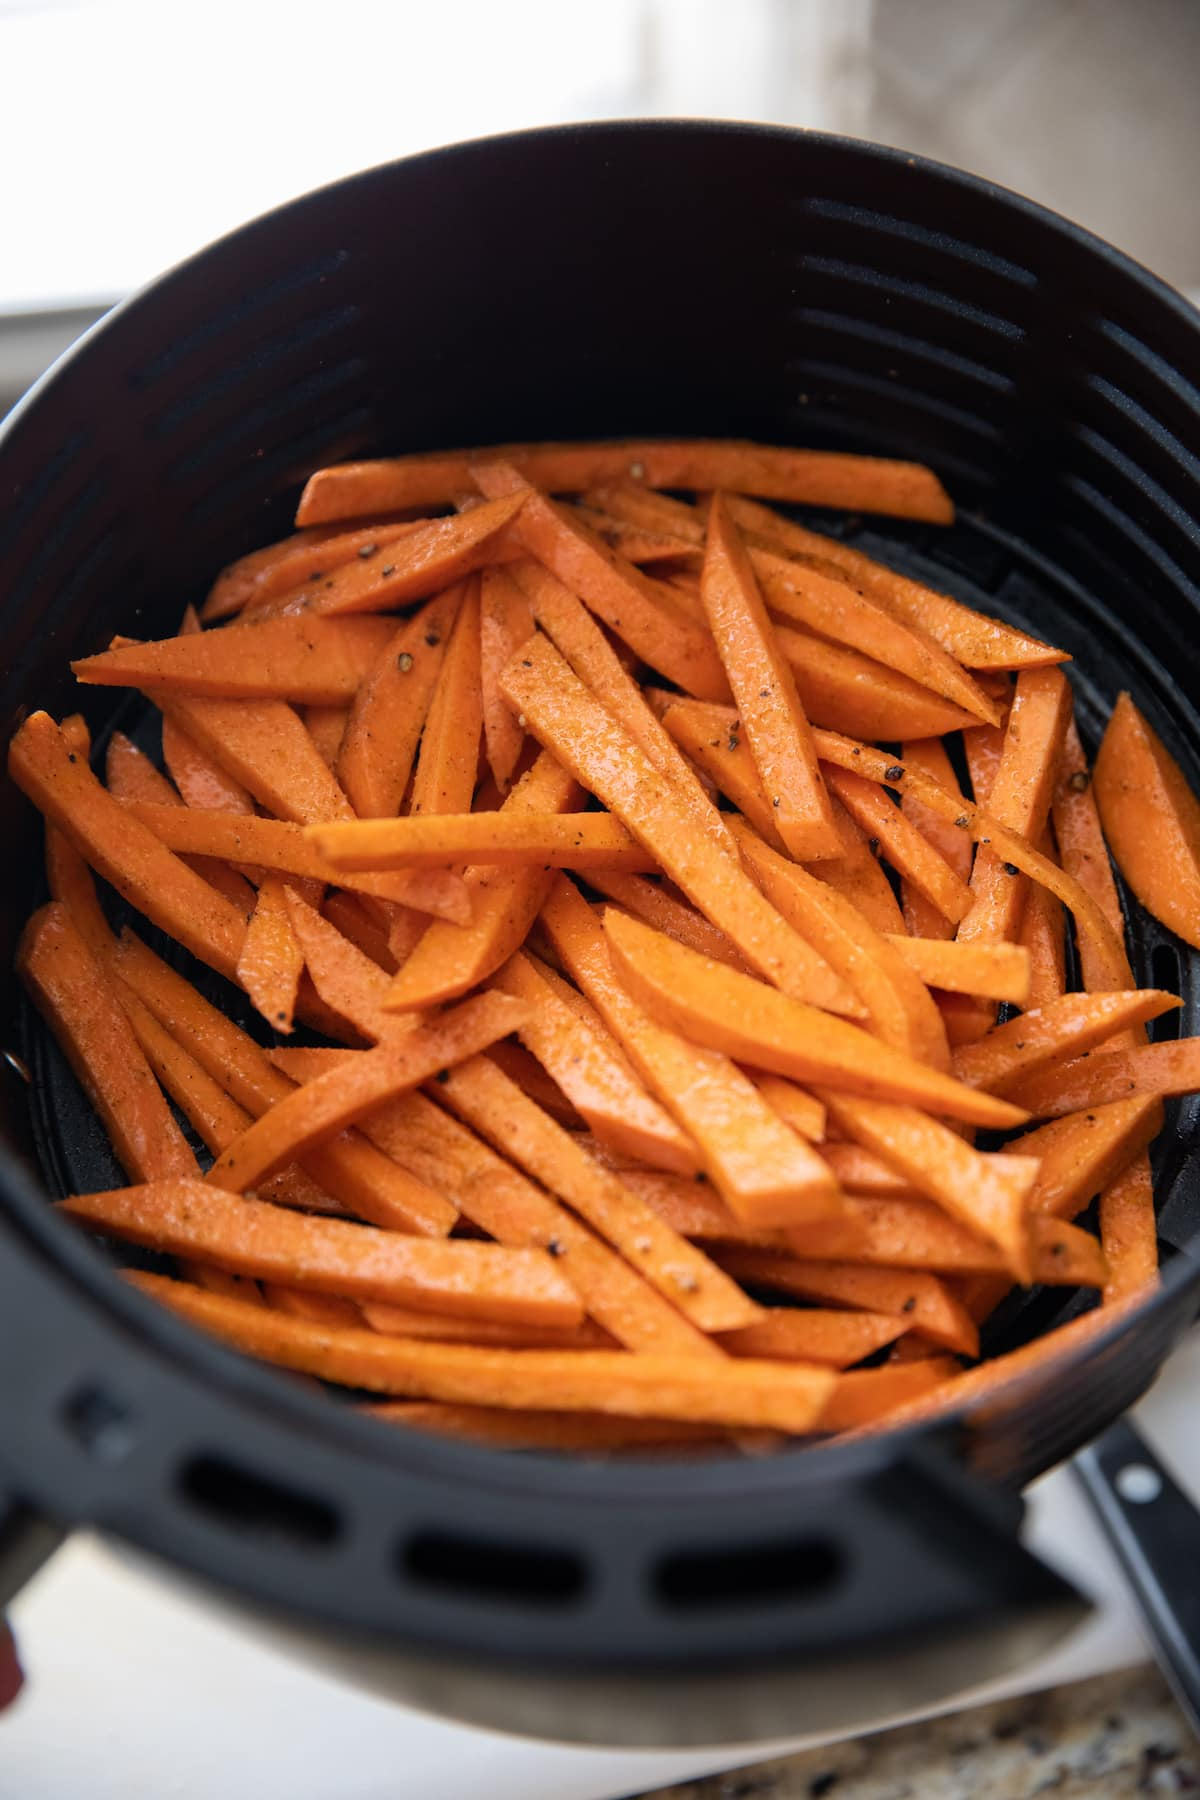 unbaked sweet potato fries in air fryer basket